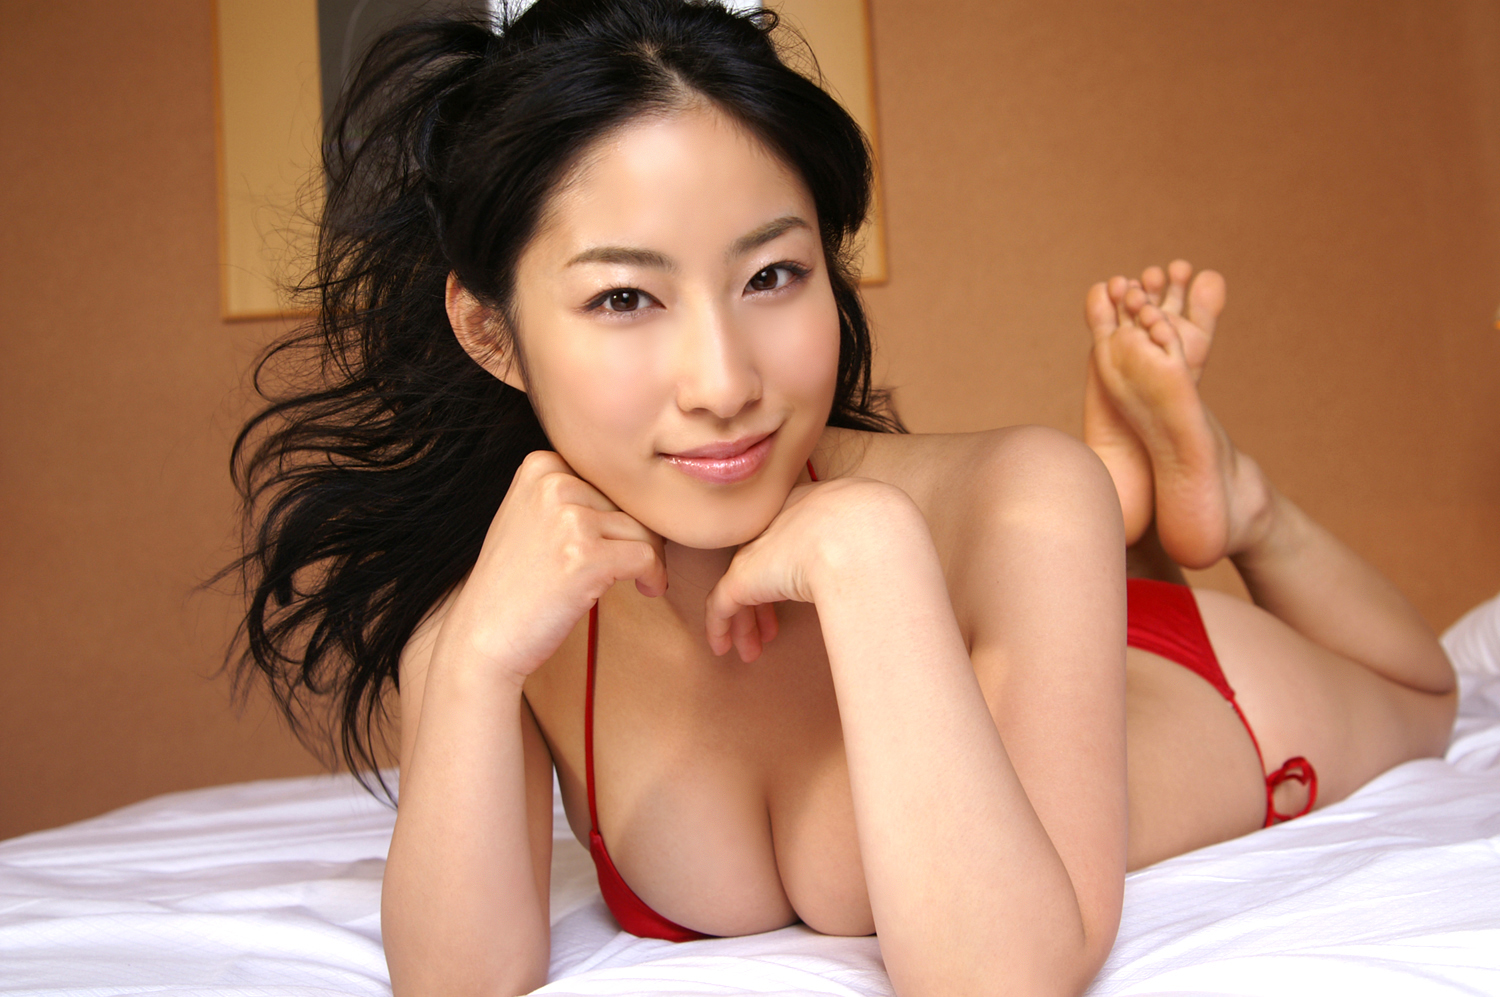 The asian woman who has a splendid constriction 9